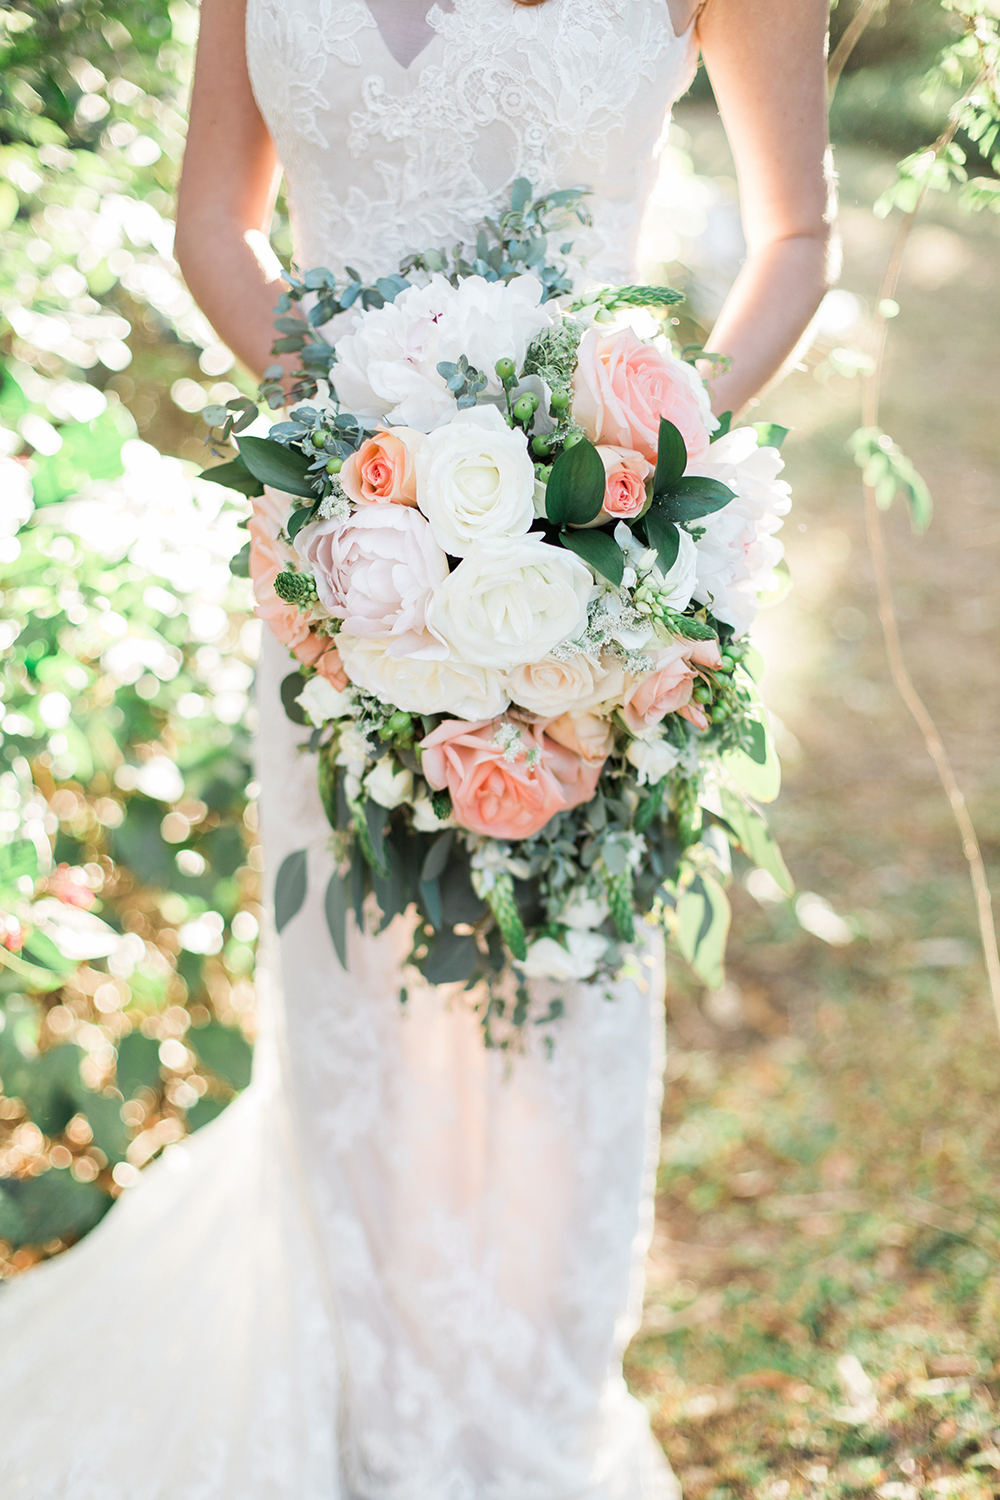 garden wedding bouquets - photo by Landon Hendrick Photography http://ruffledblog.com/southern-garden-chic-wedding-inspiration